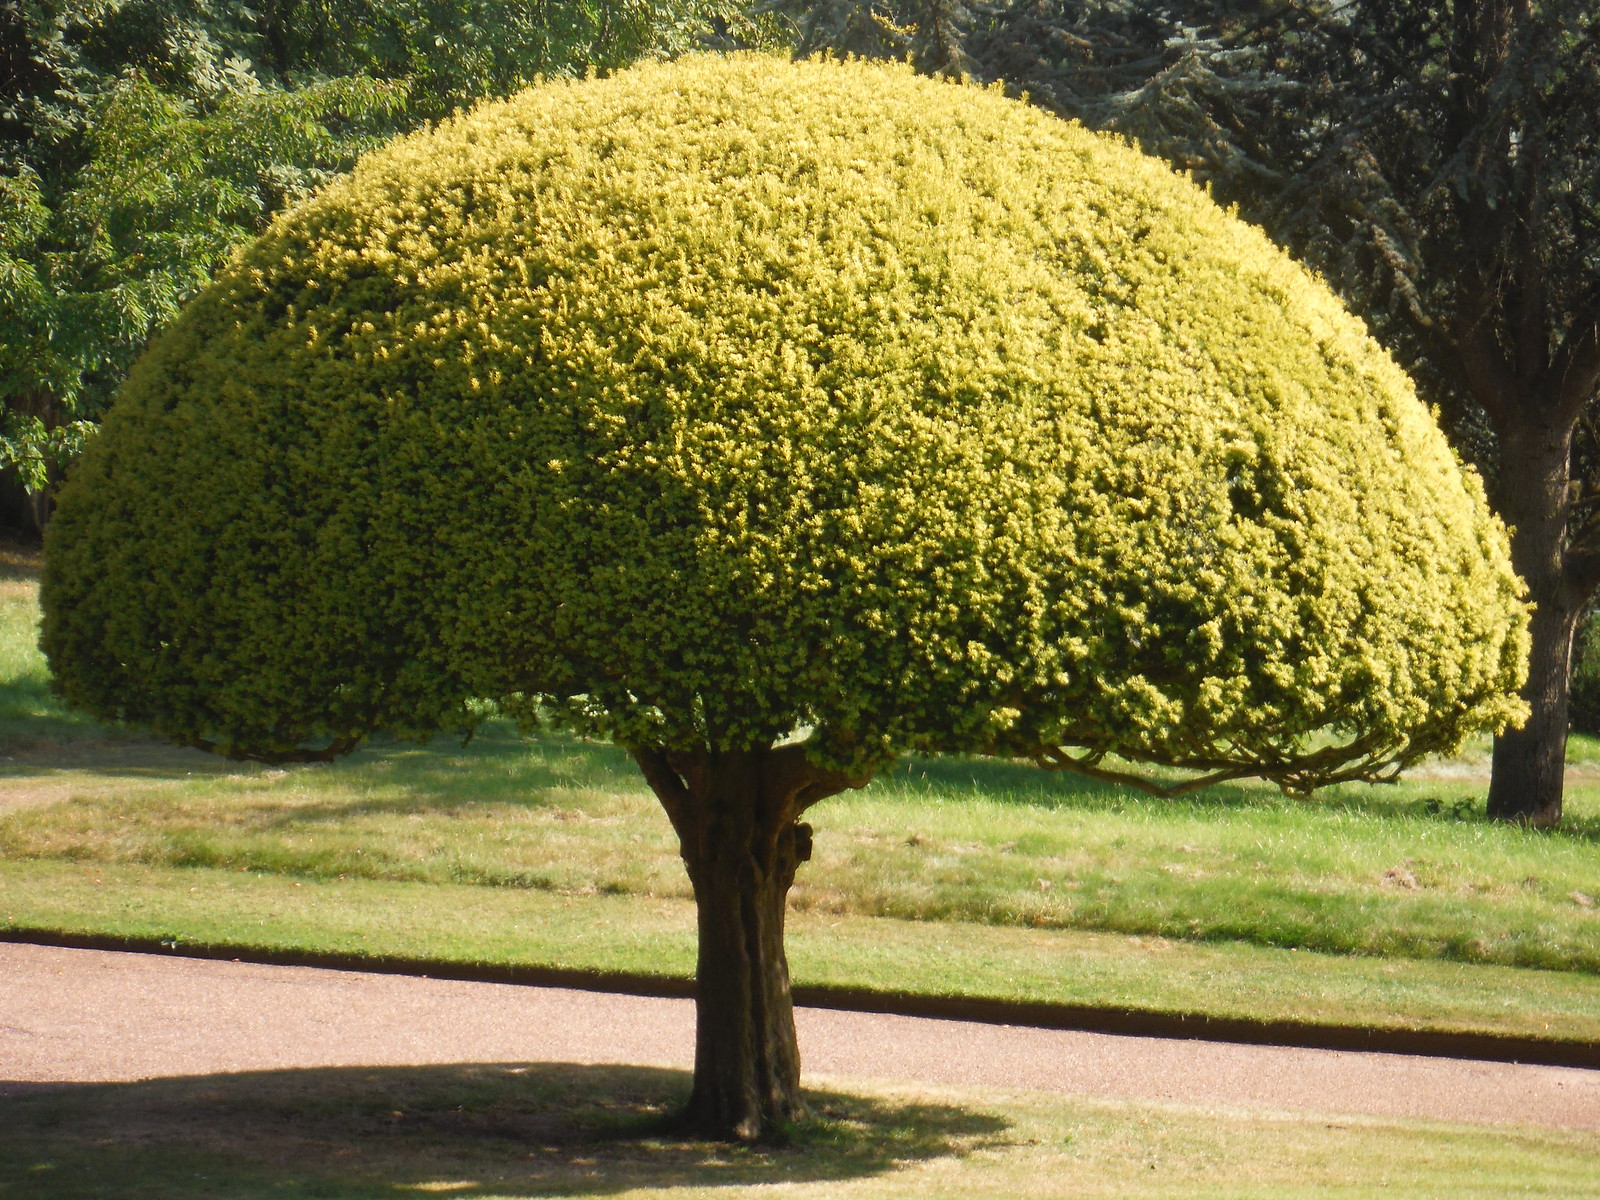 Tree, Waddesdon Manor Gardens SWC 192 Haddenham to Aylesbury (via Waddesdon)